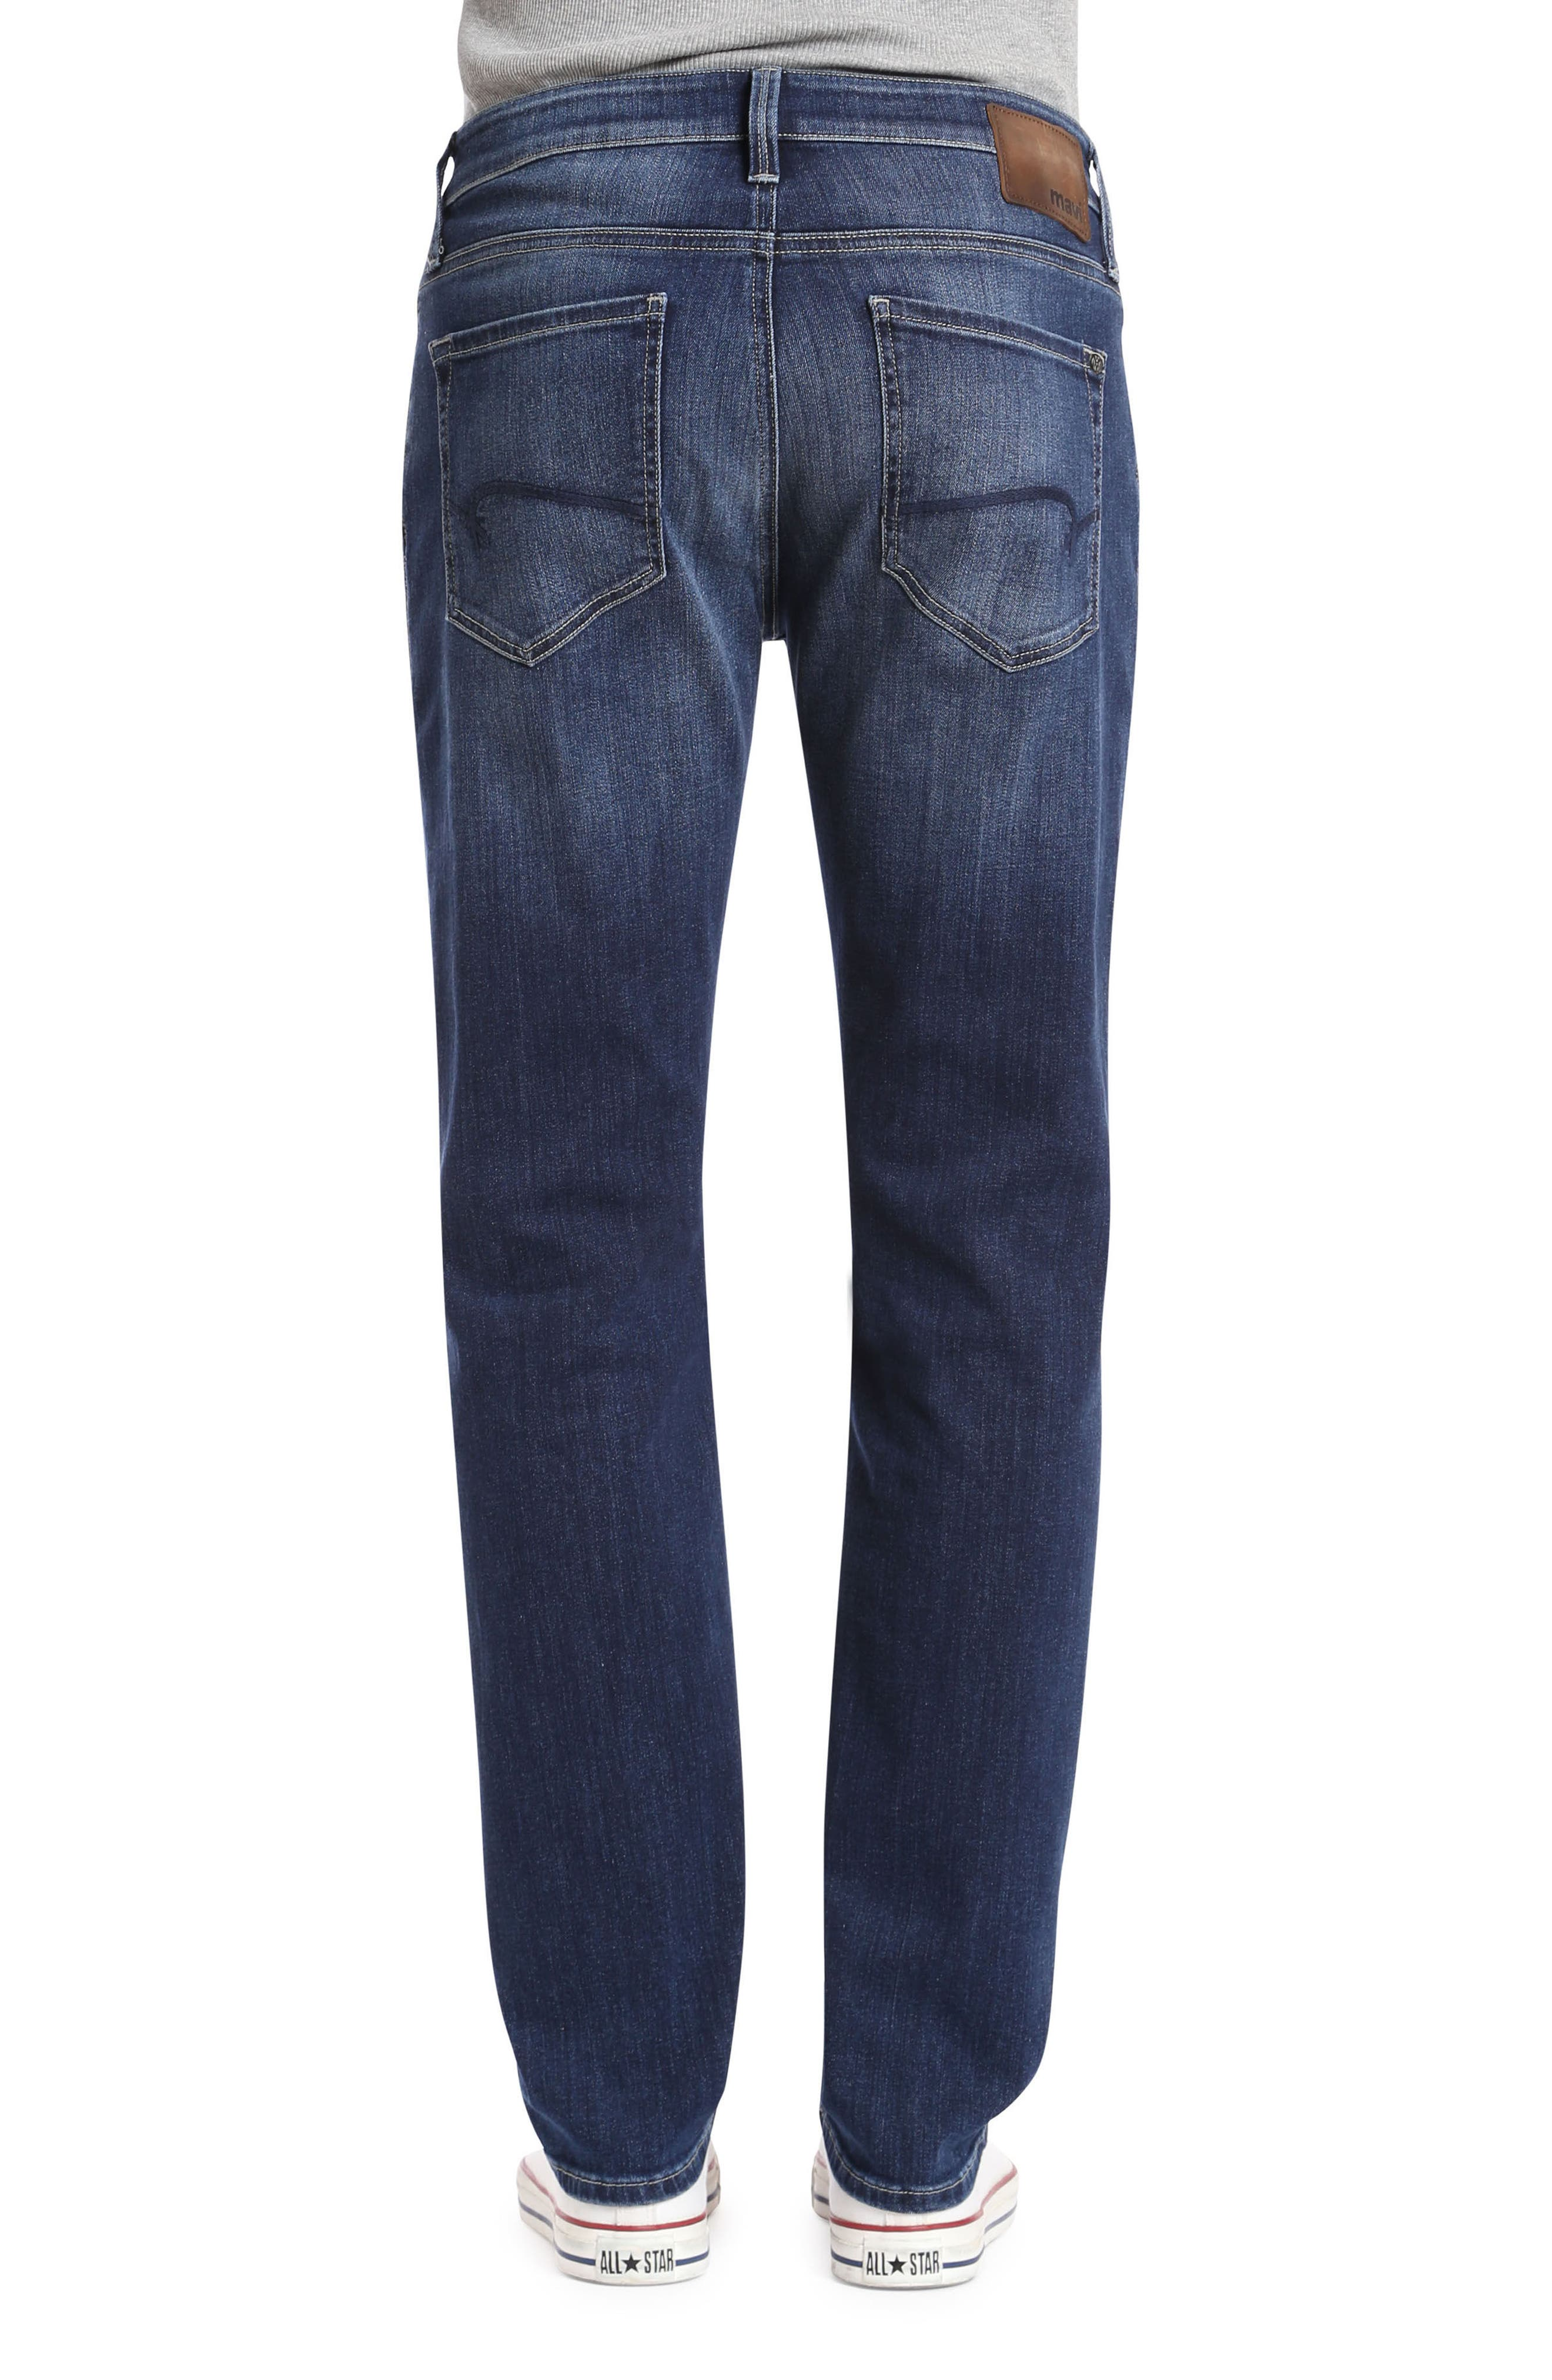 Marcus Slim Straight Leg Jeans,                             Alternate thumbnail 2, color,                             Dark Blue Williamsburg